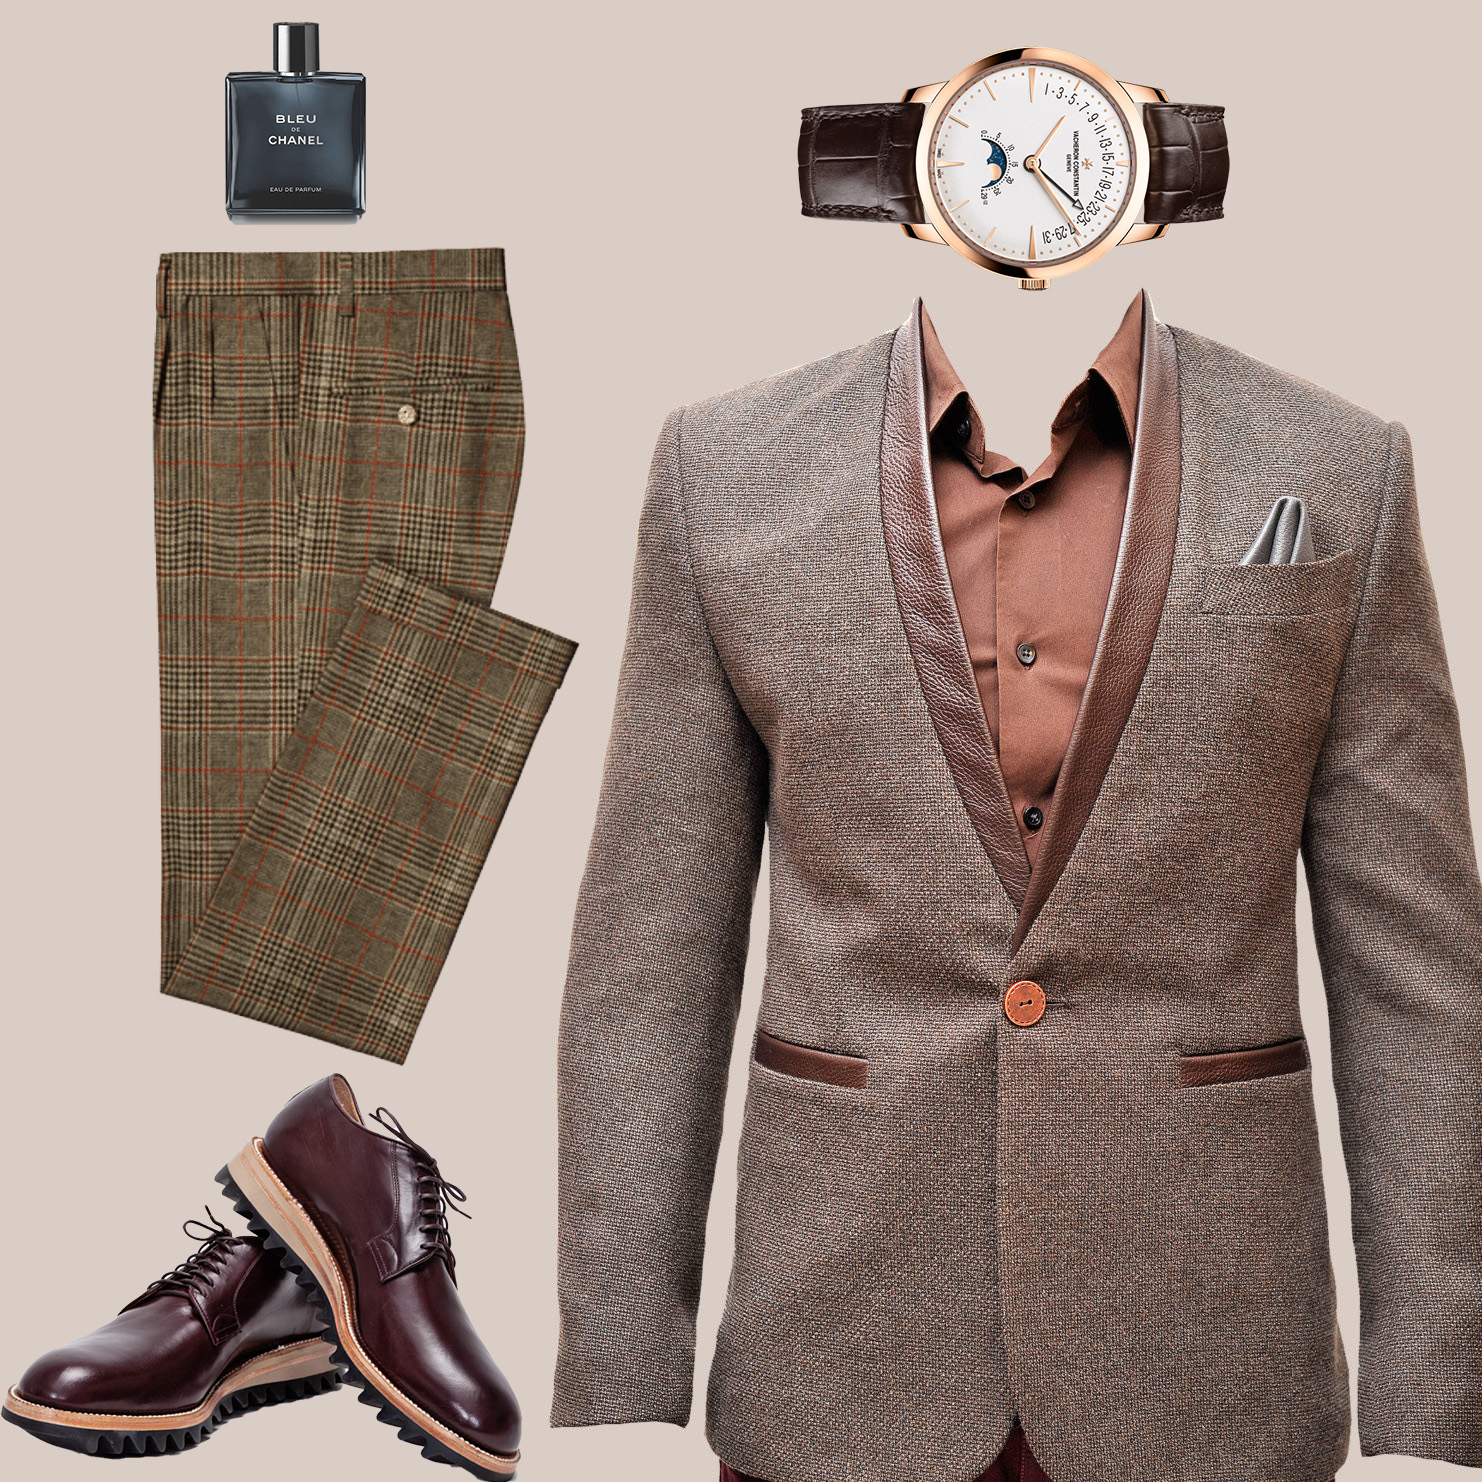 sports coat wedding guest outfit for men